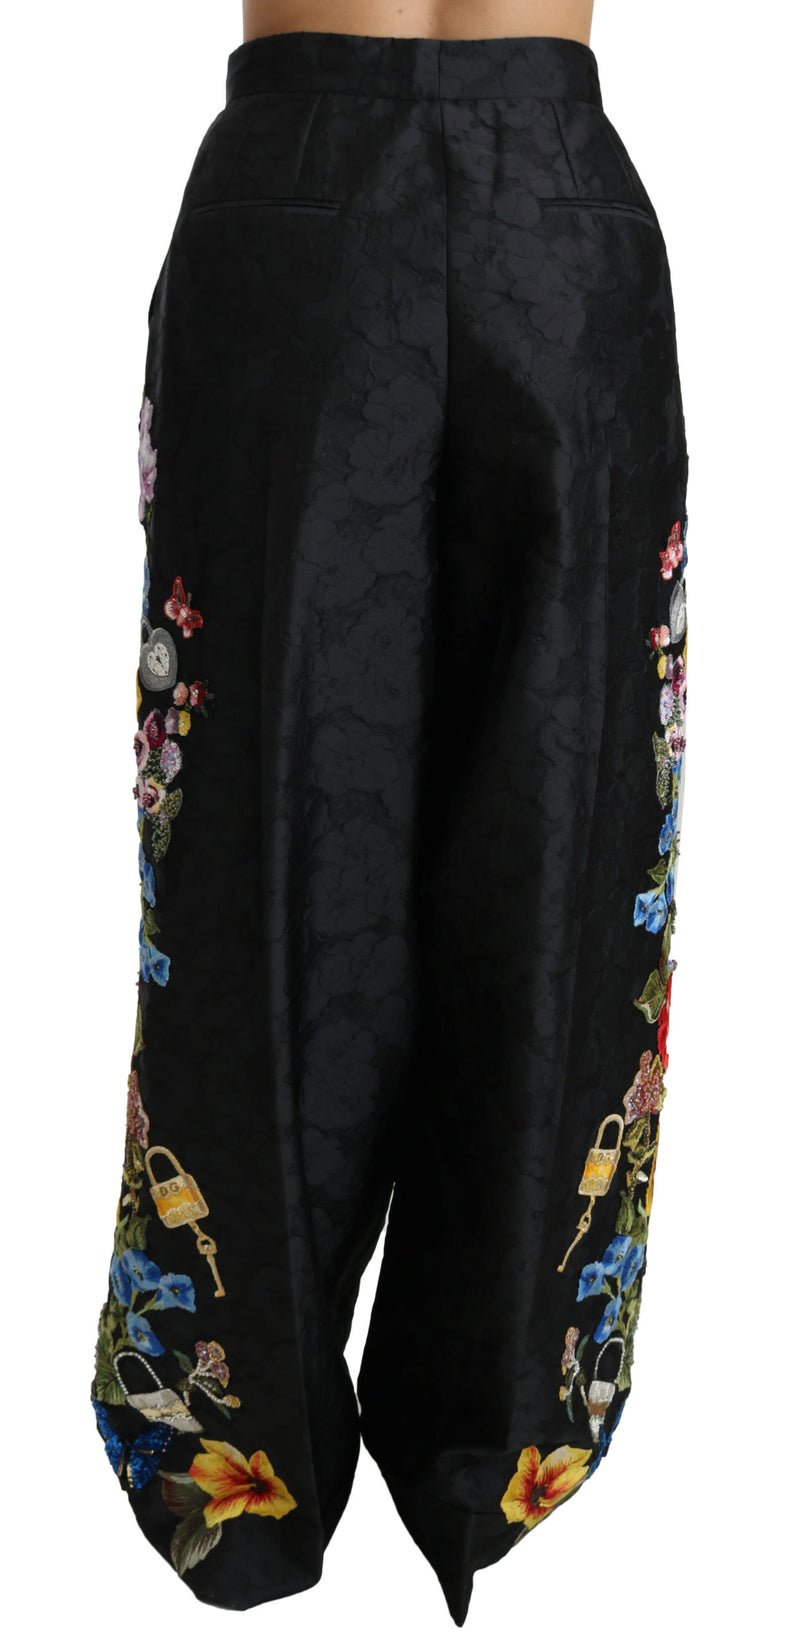 Black Brocade Floral Sequined Beaded Pants